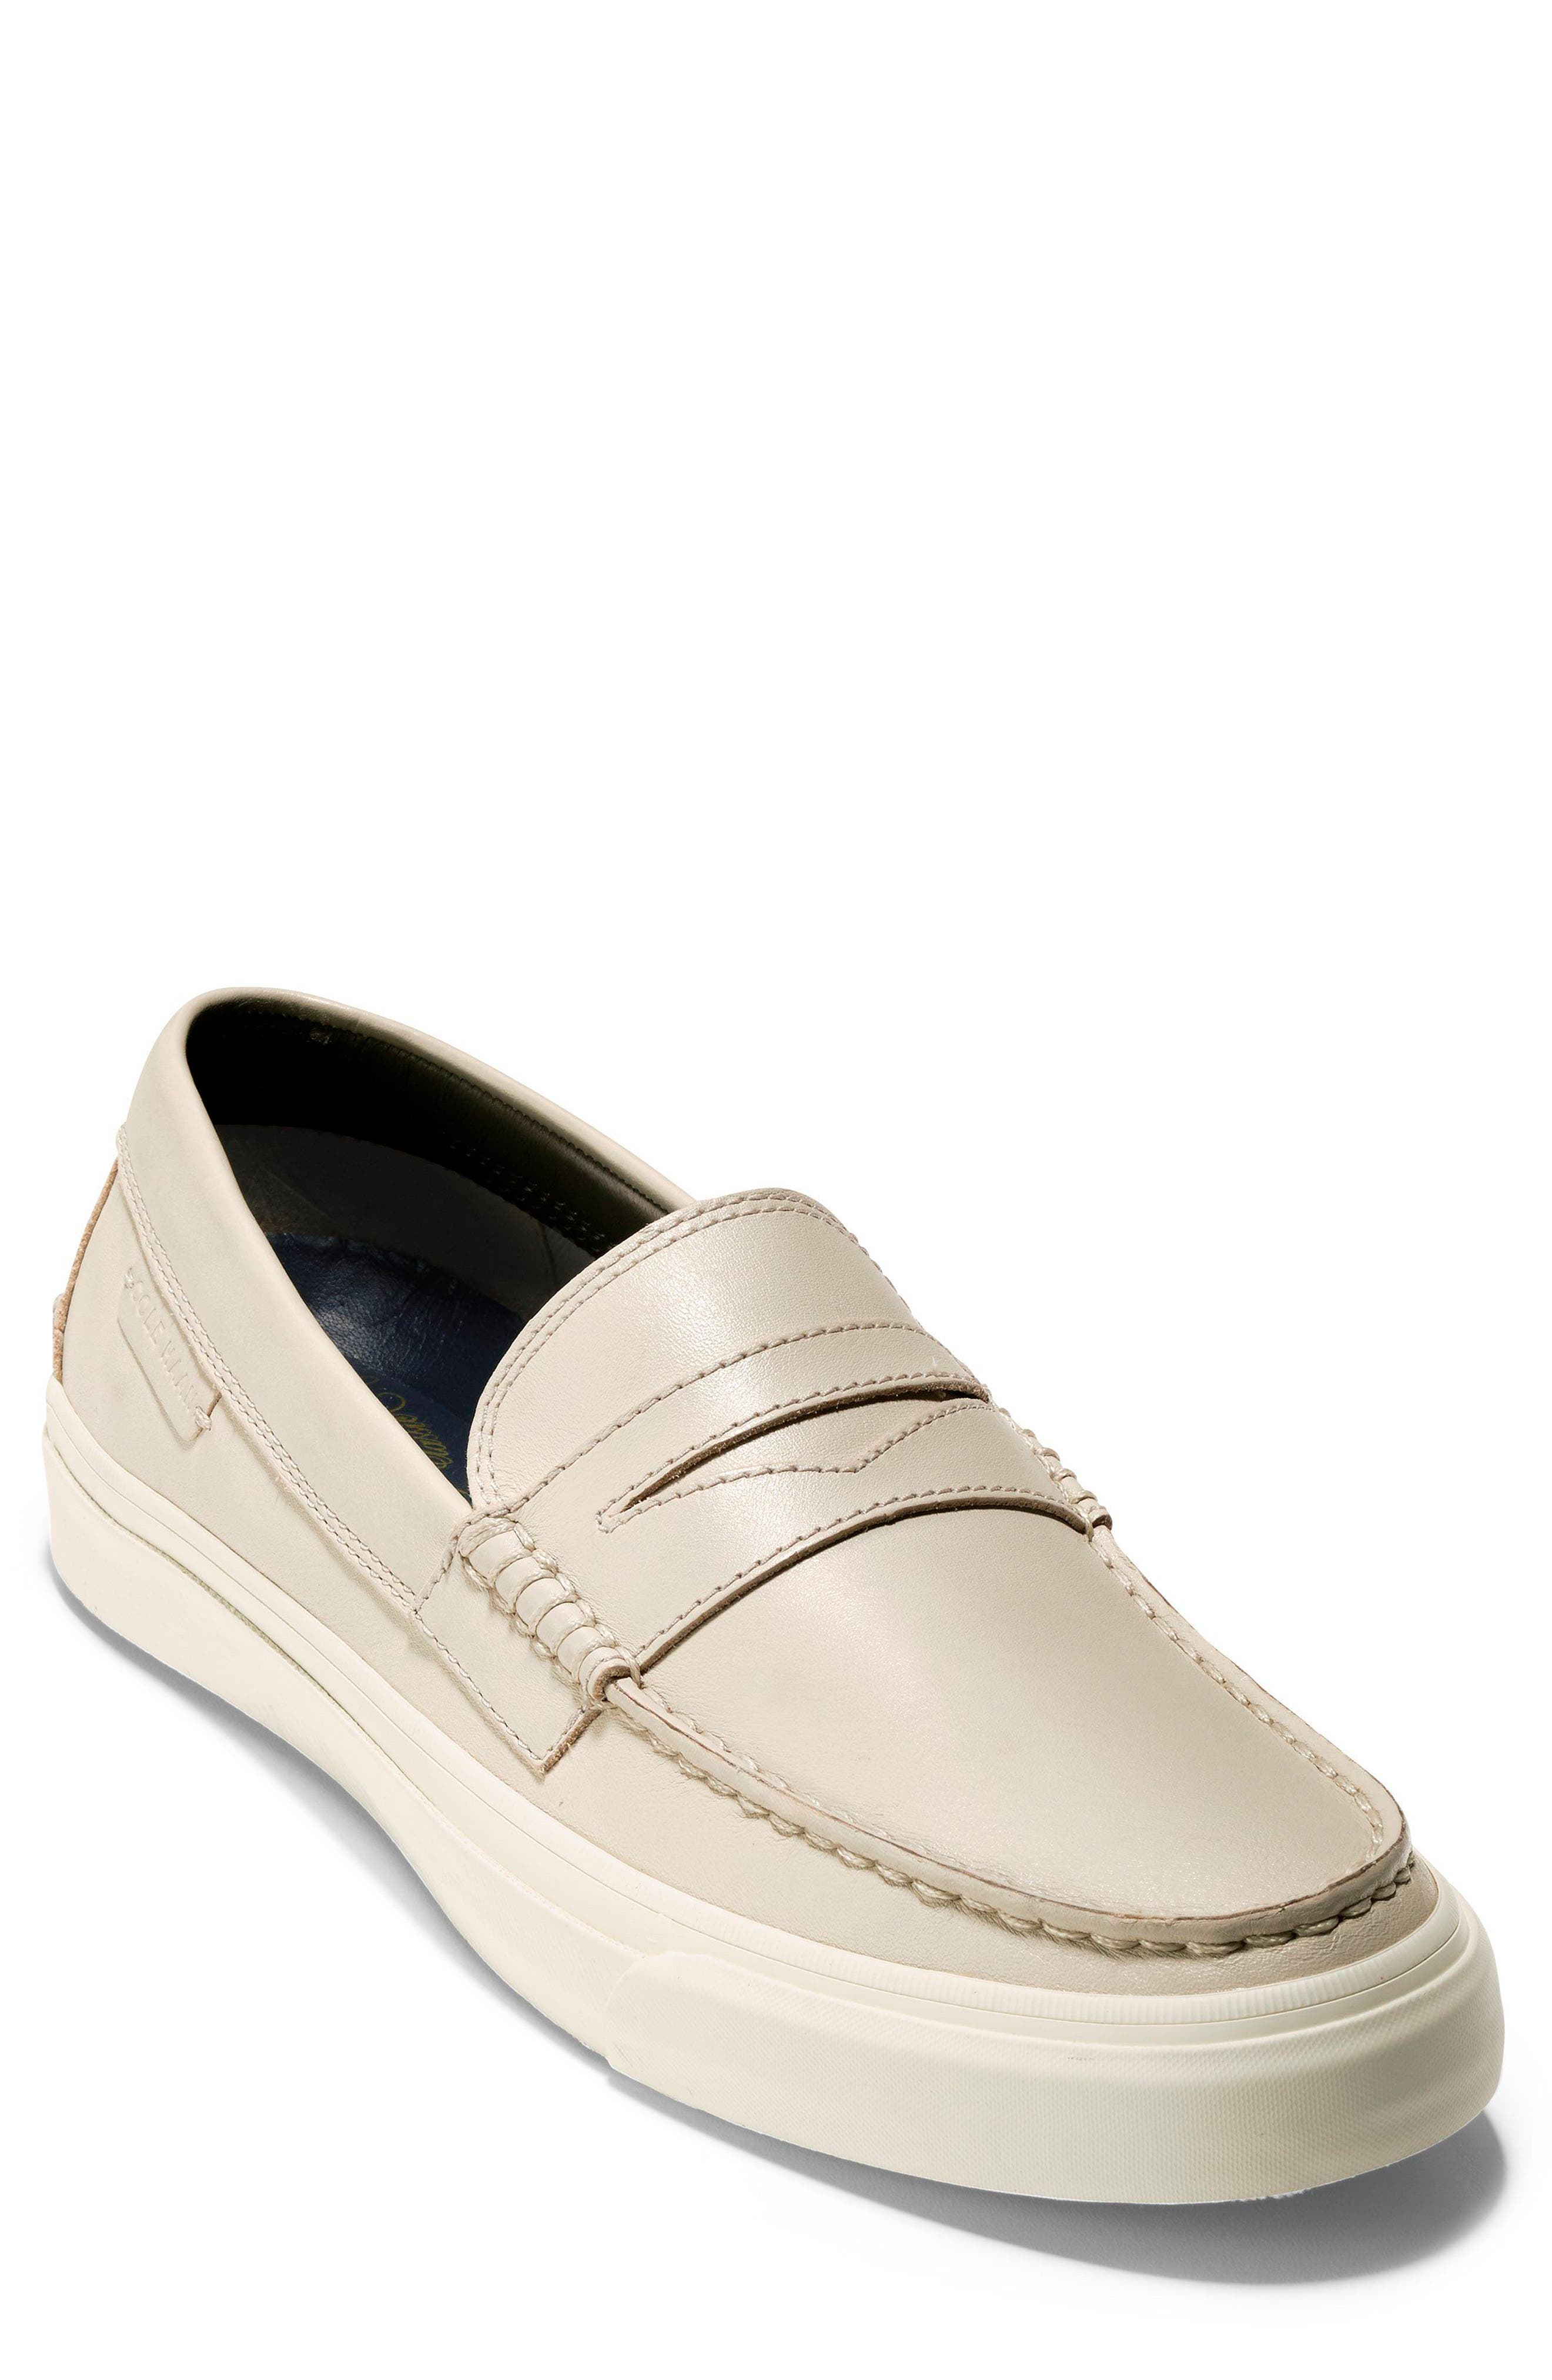 Pinch Weekend LX Penny Loafer,                             Main thumbnail 6, color,